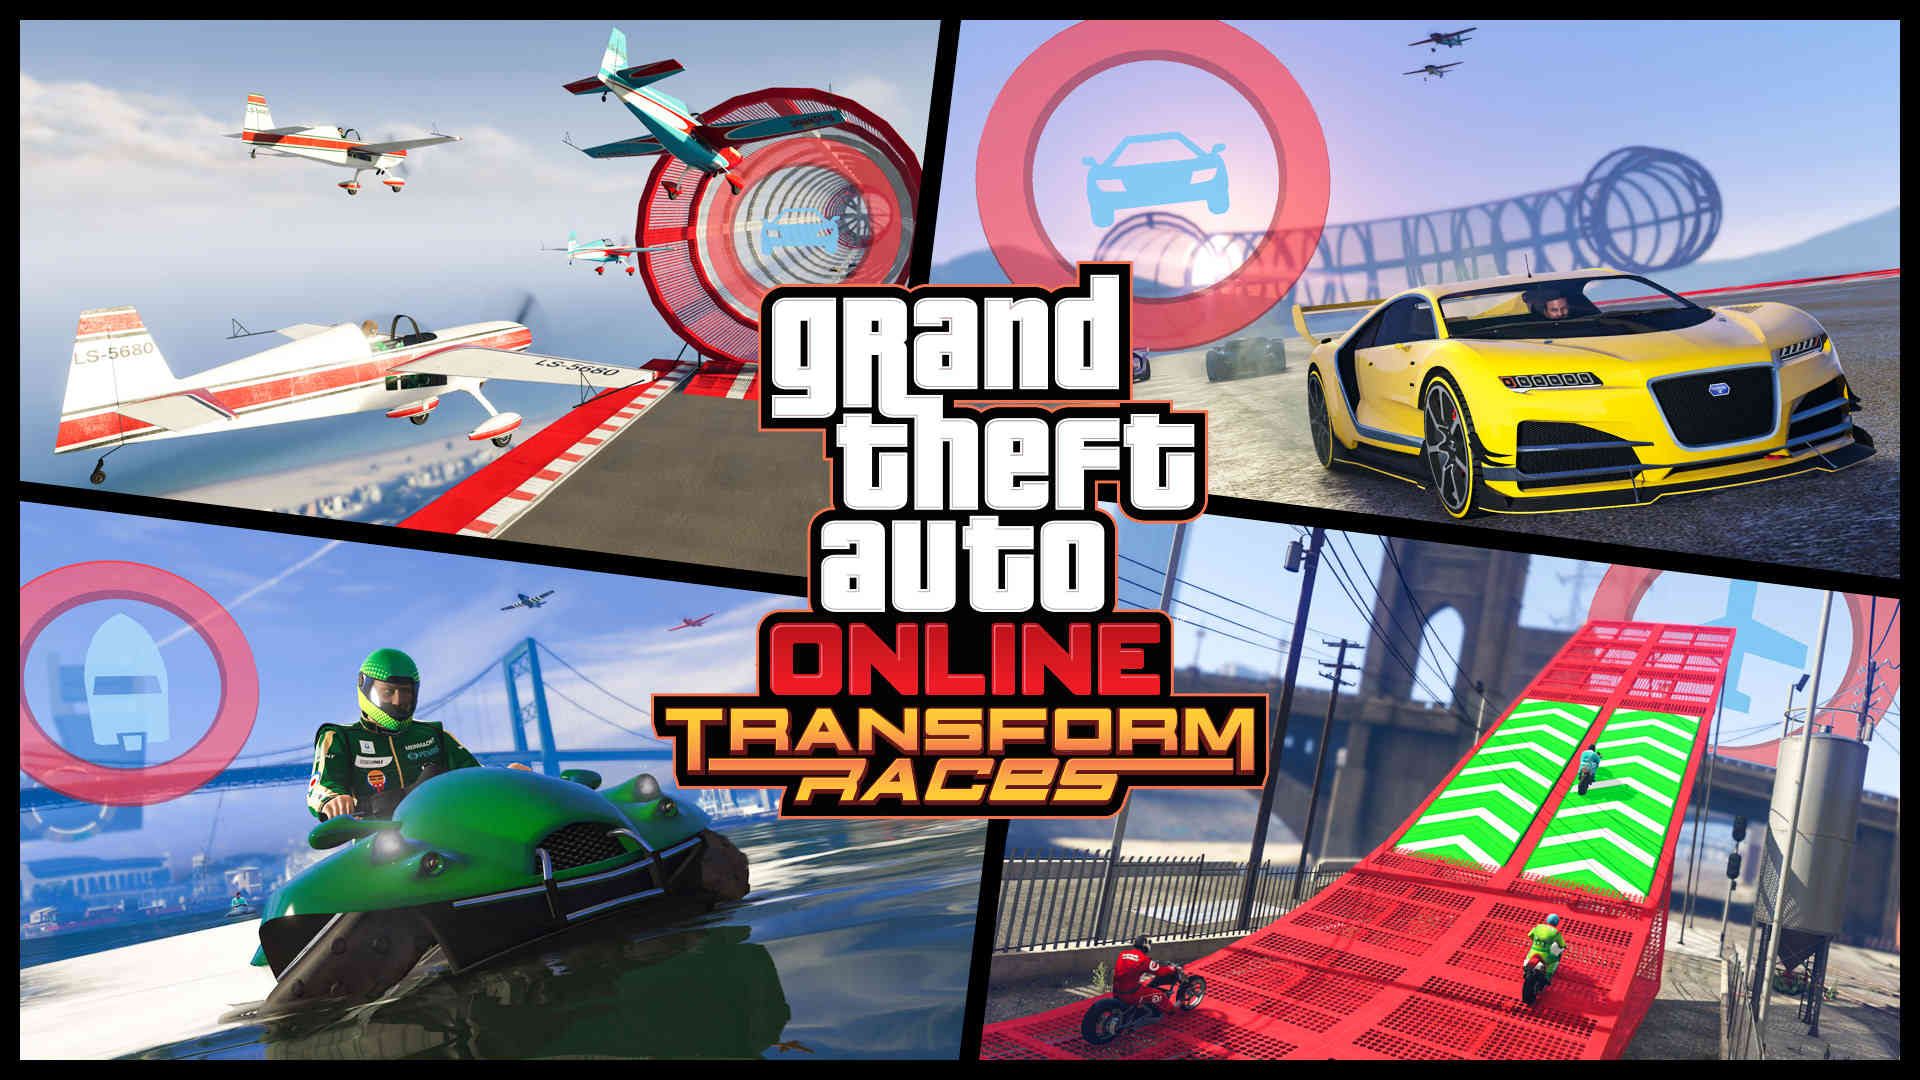 Transforming vehicle races coming to GTA Online